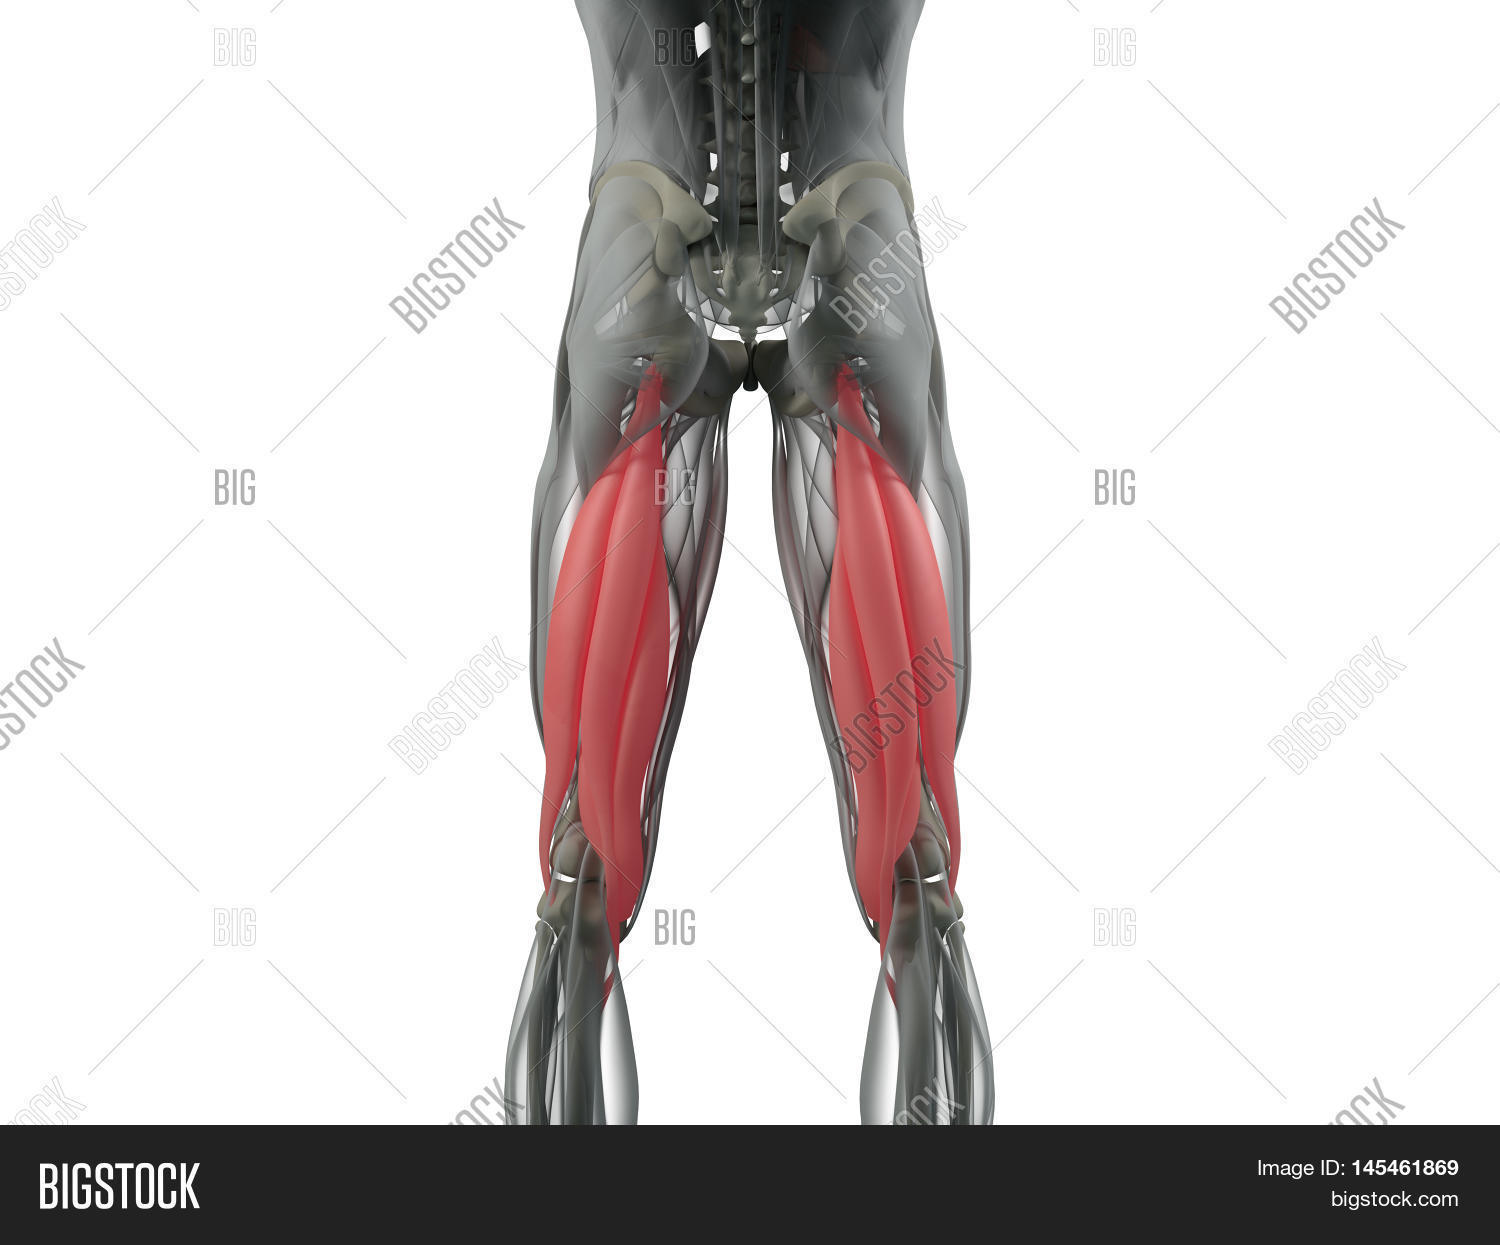 Hamstring Muscle Group Image & Photo (Free Trial) | Bigstock